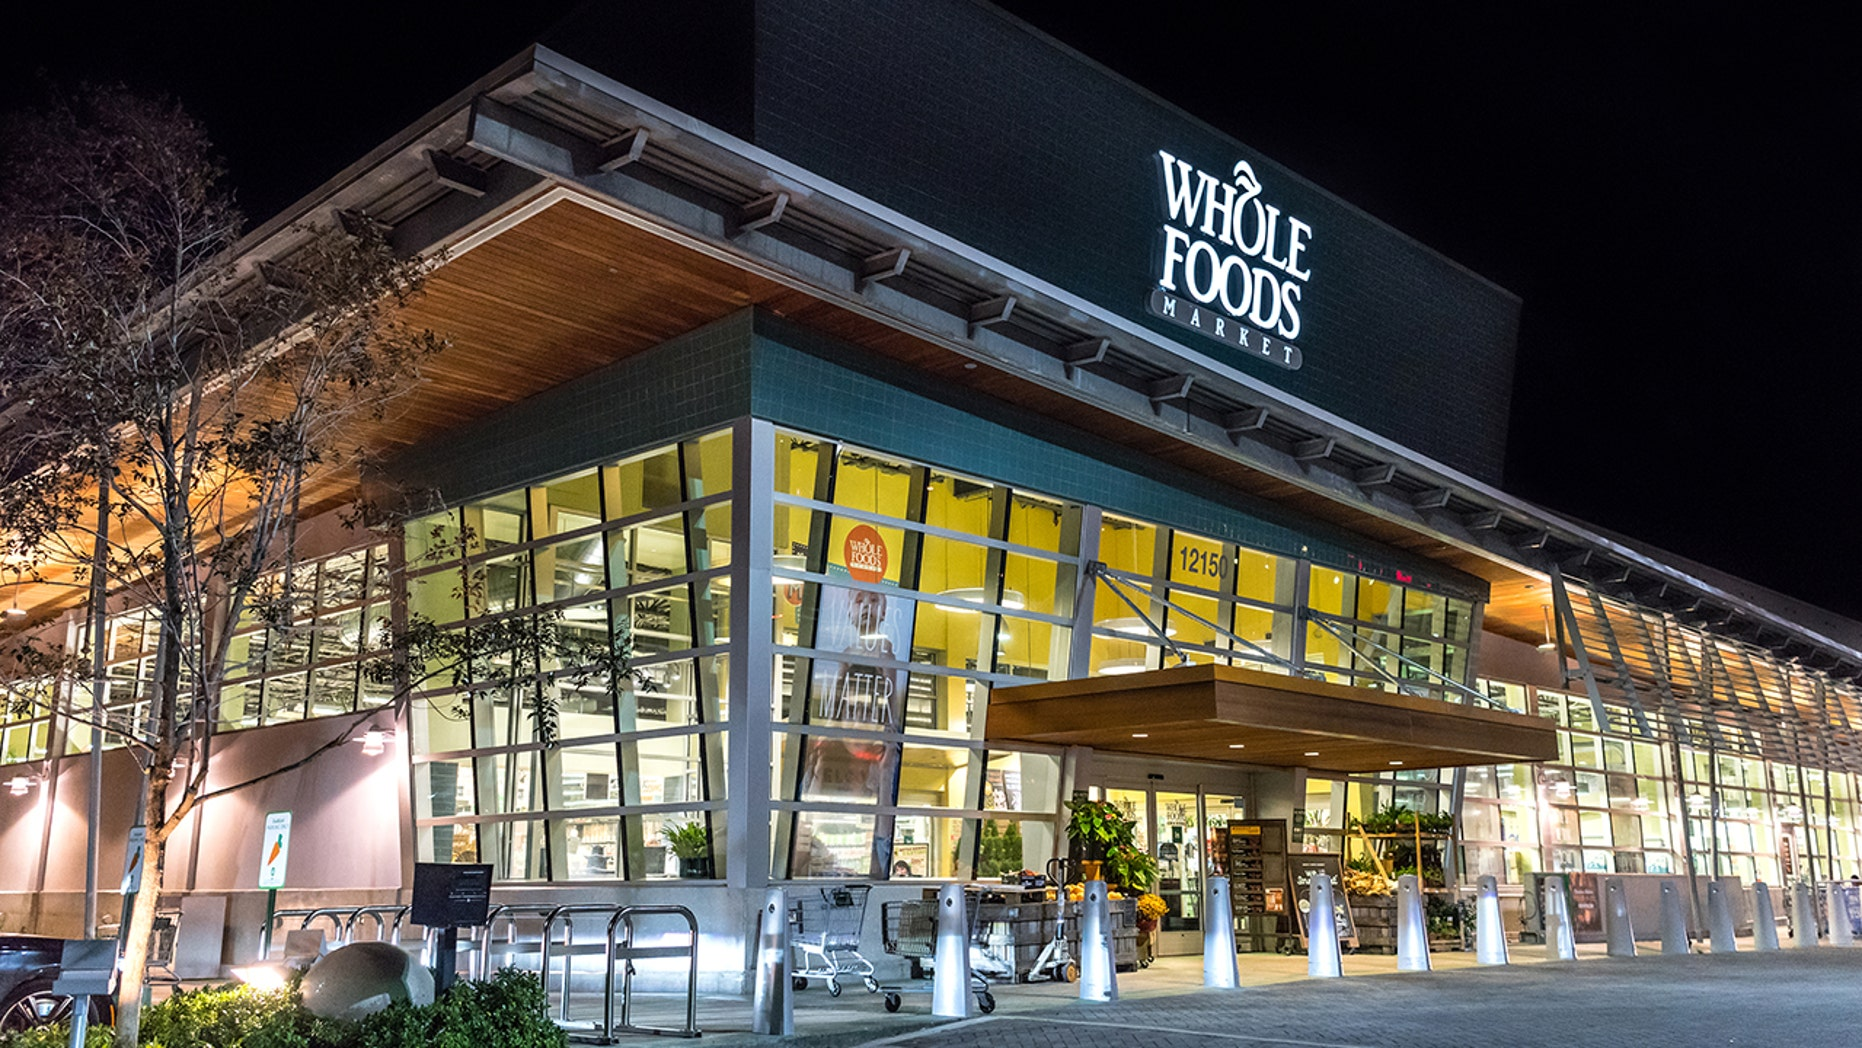 Whole Foods recalls several food products due to possible salmonella contamination